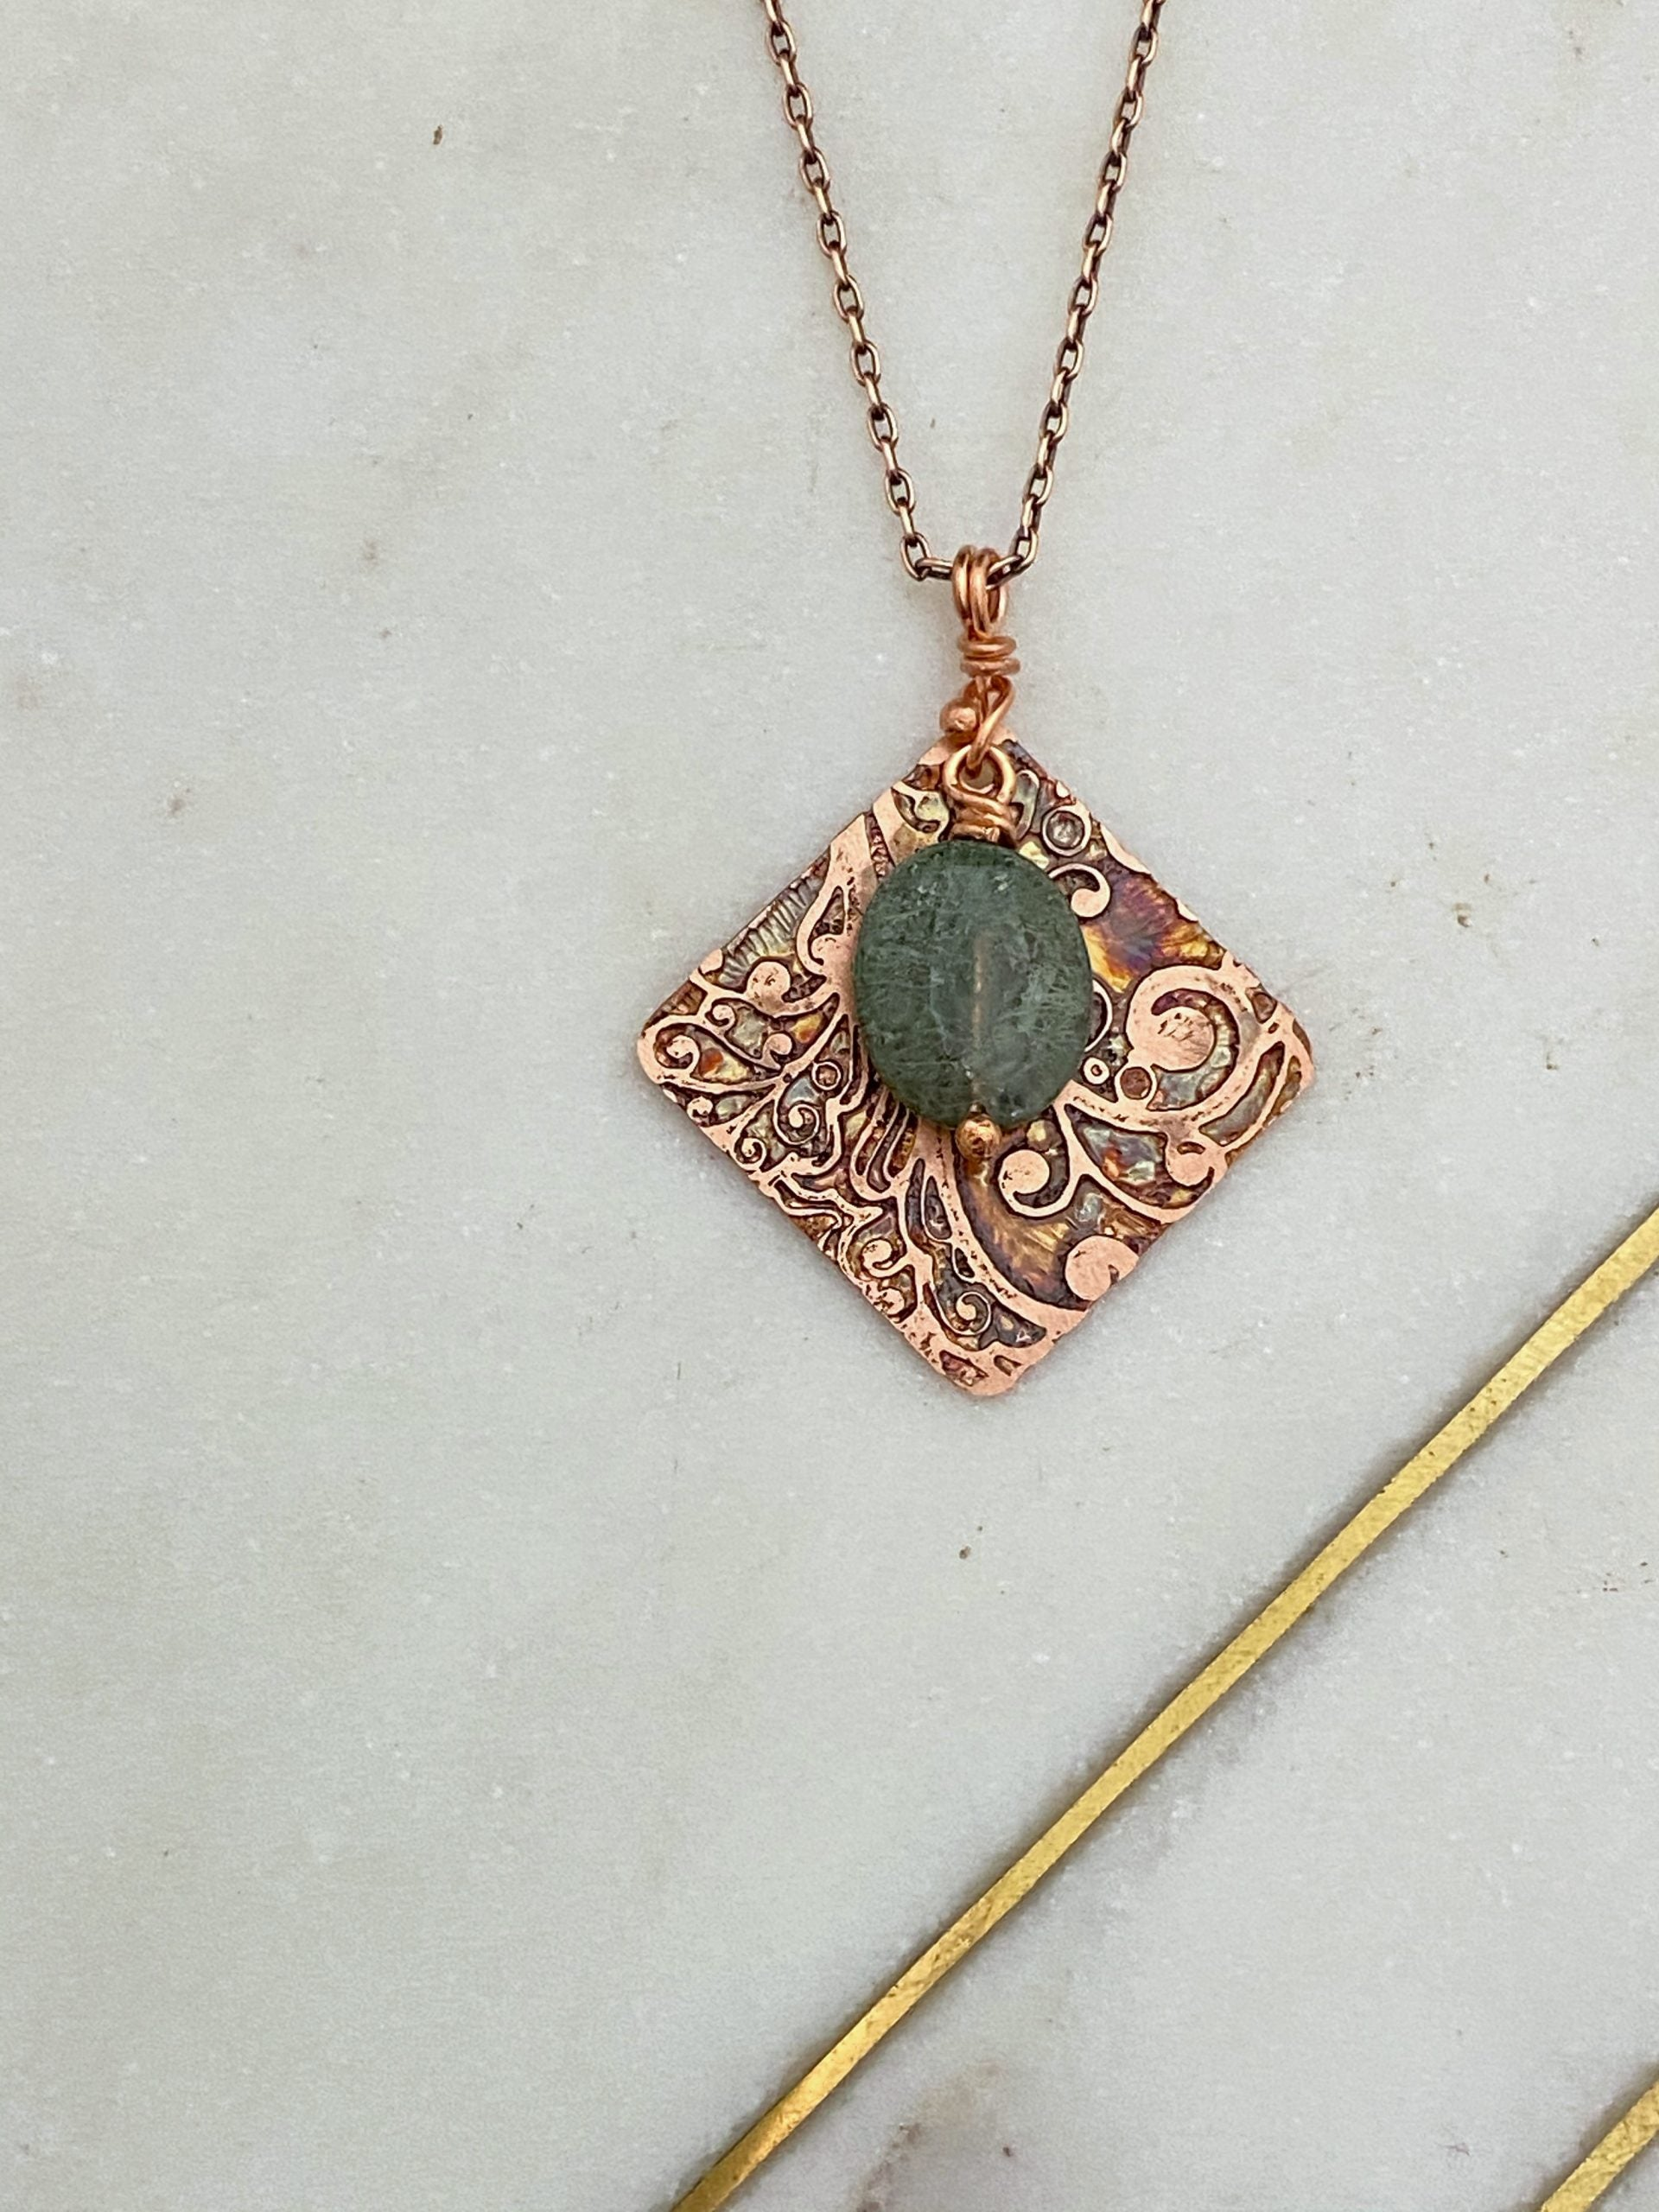 Acid etched copper swirl necklace with fancy jasper